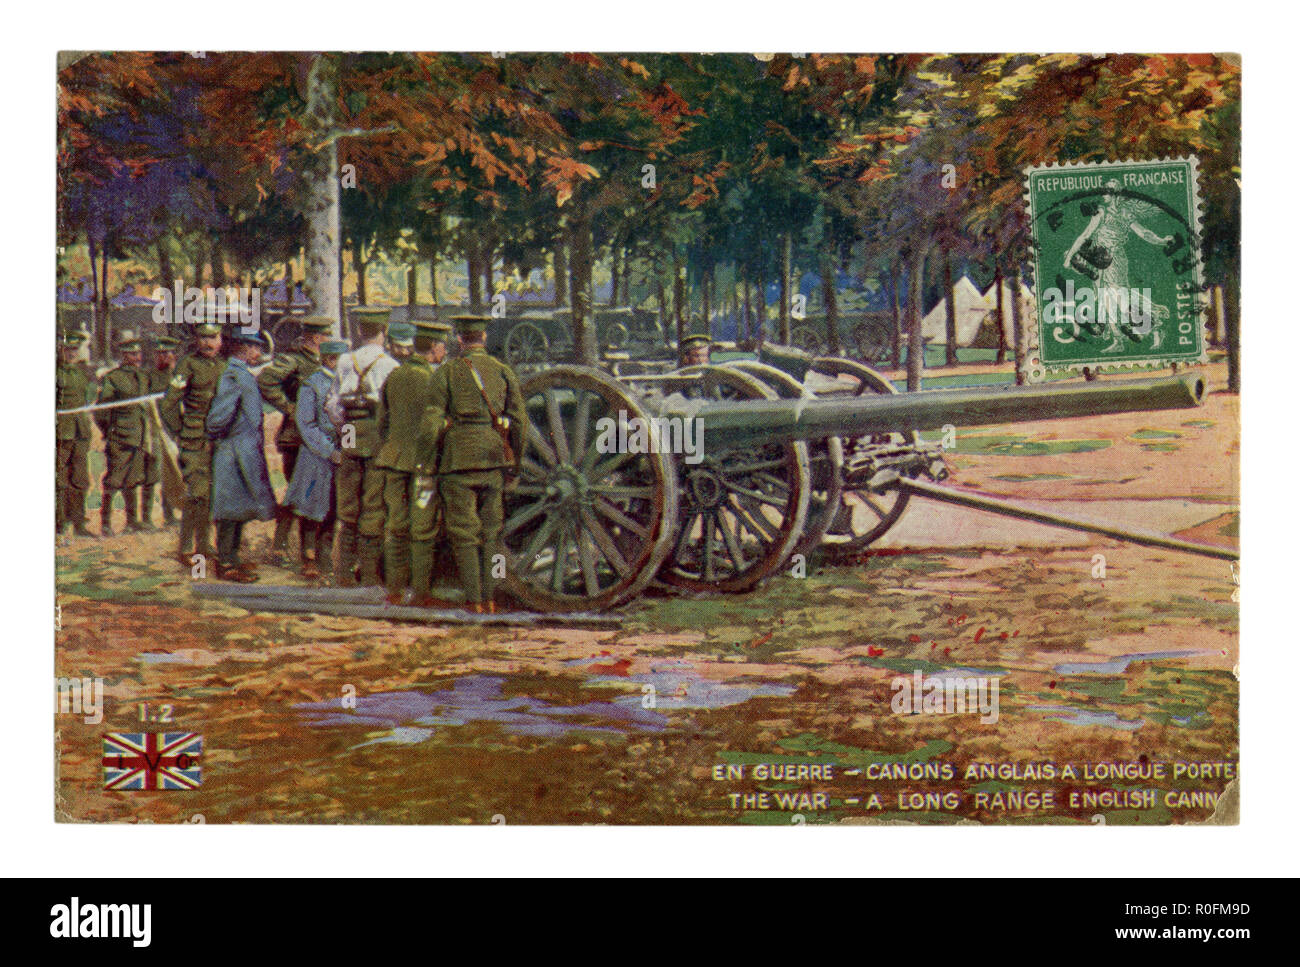 French historical postcard: a long range english cannon, british officers inspect the new weapon. Military camp in the forest. world war one 1914-1918 - Stock Image